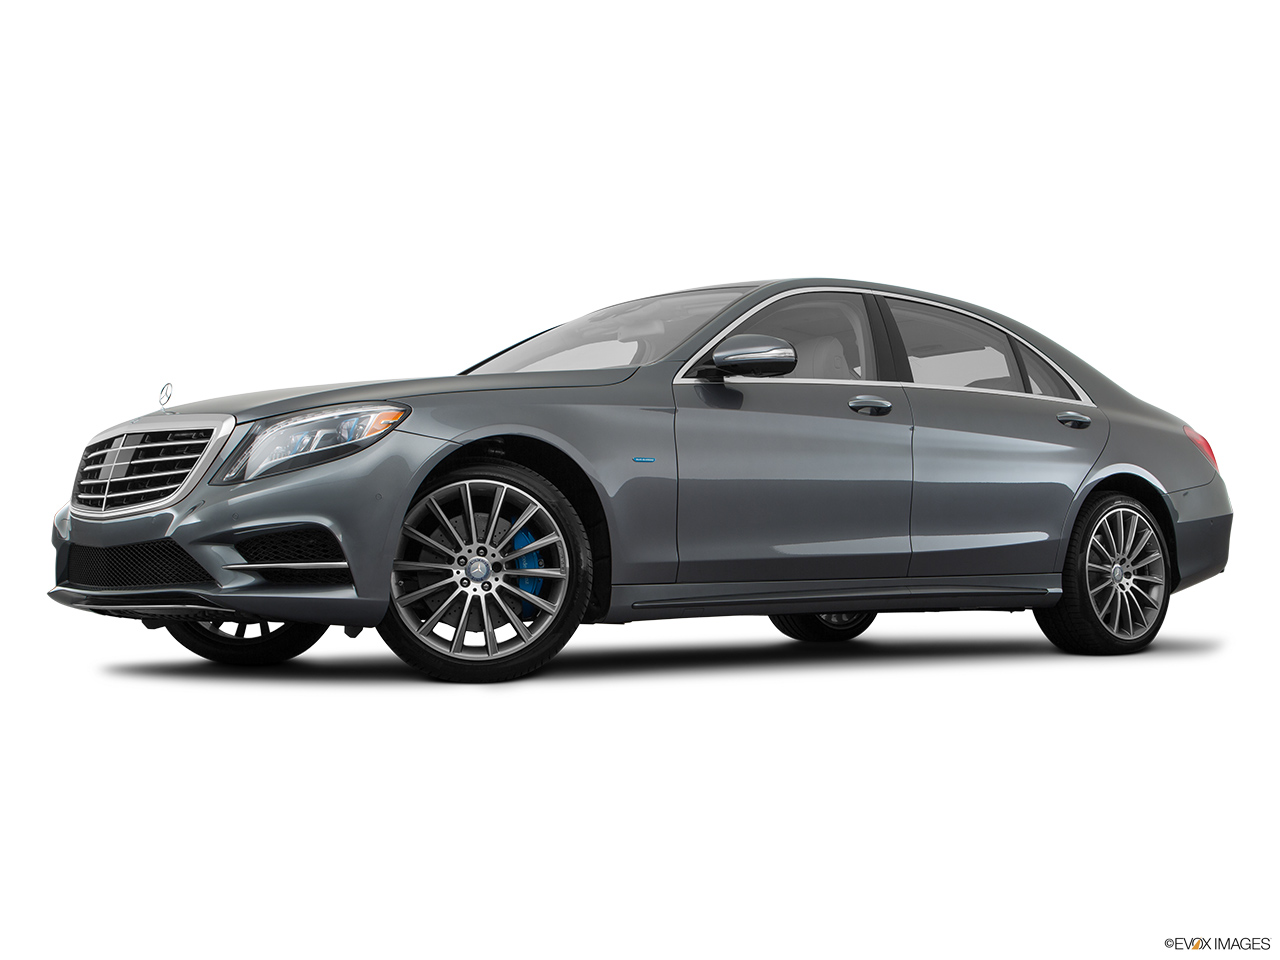 Car pictures list for mercedes benz s class 2017 s 500 e for Mercedes benz e class 500